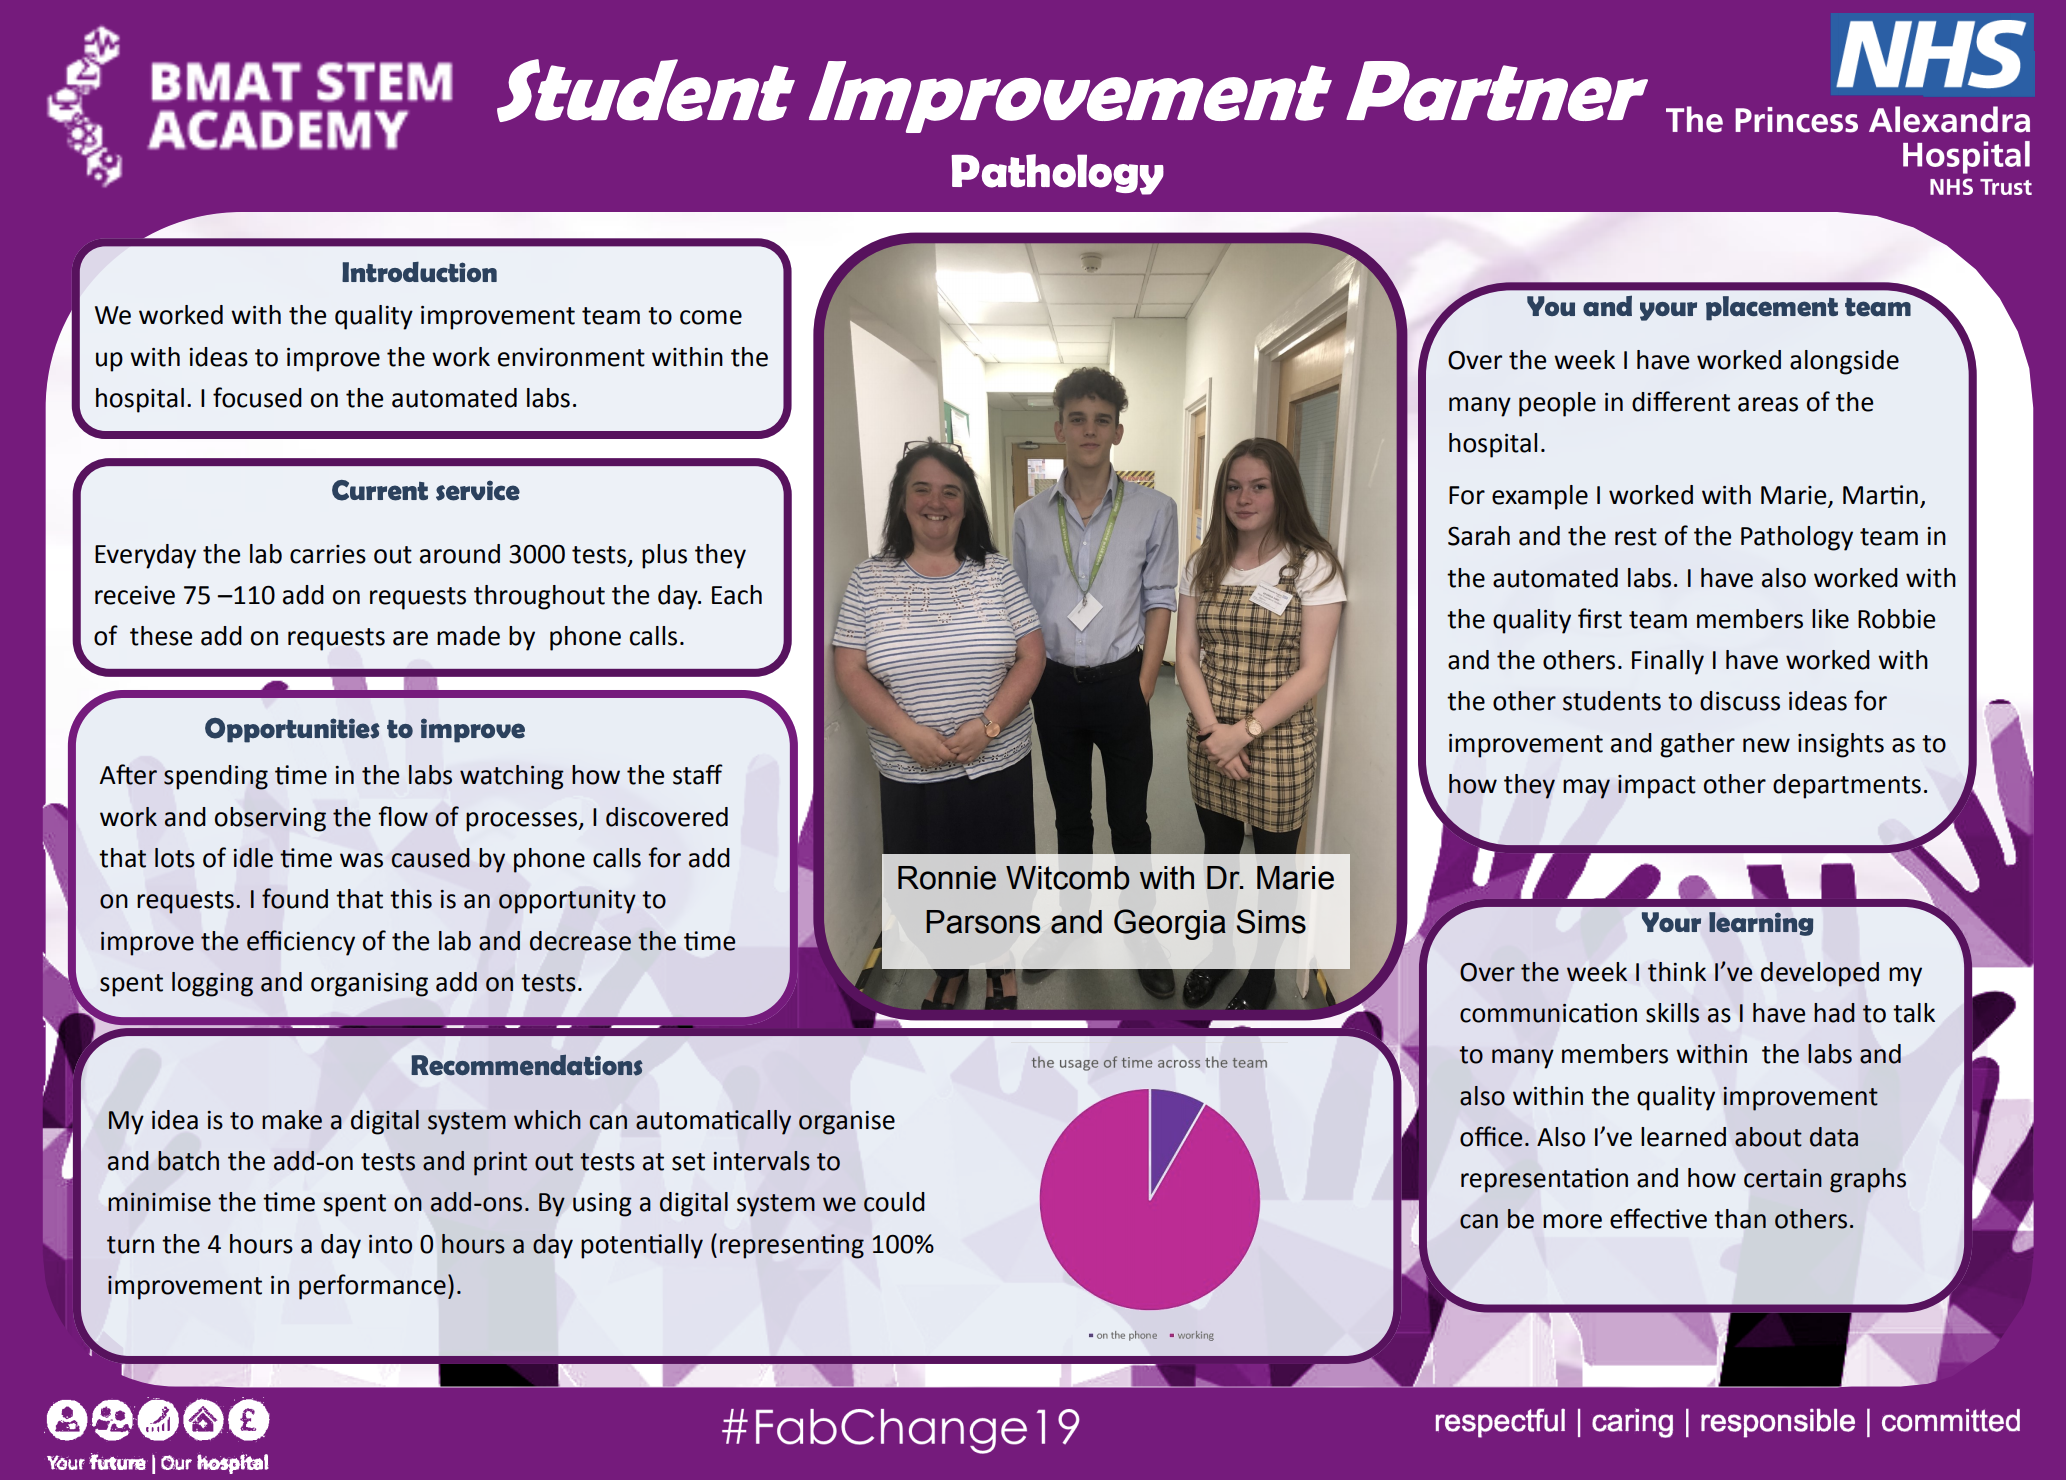 Student Improvement Partners - Pathology - Ronnie Witcomb - @QualityFirstPAH featured image